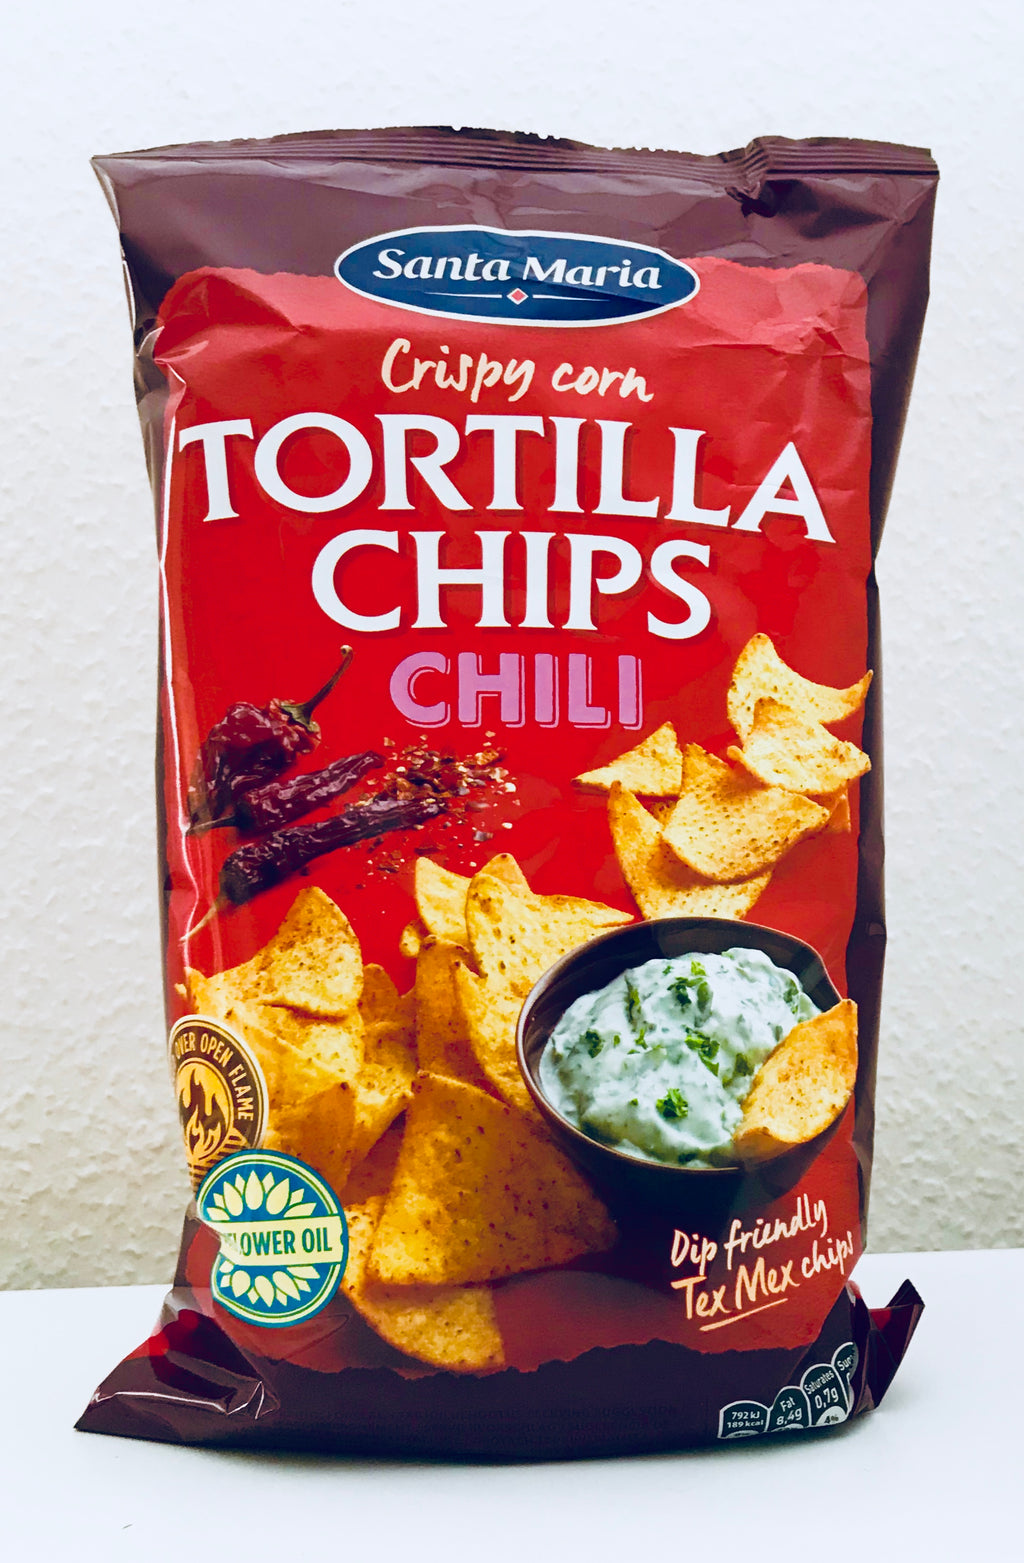 Tortilla Chips Chili 185g - Santa Maria